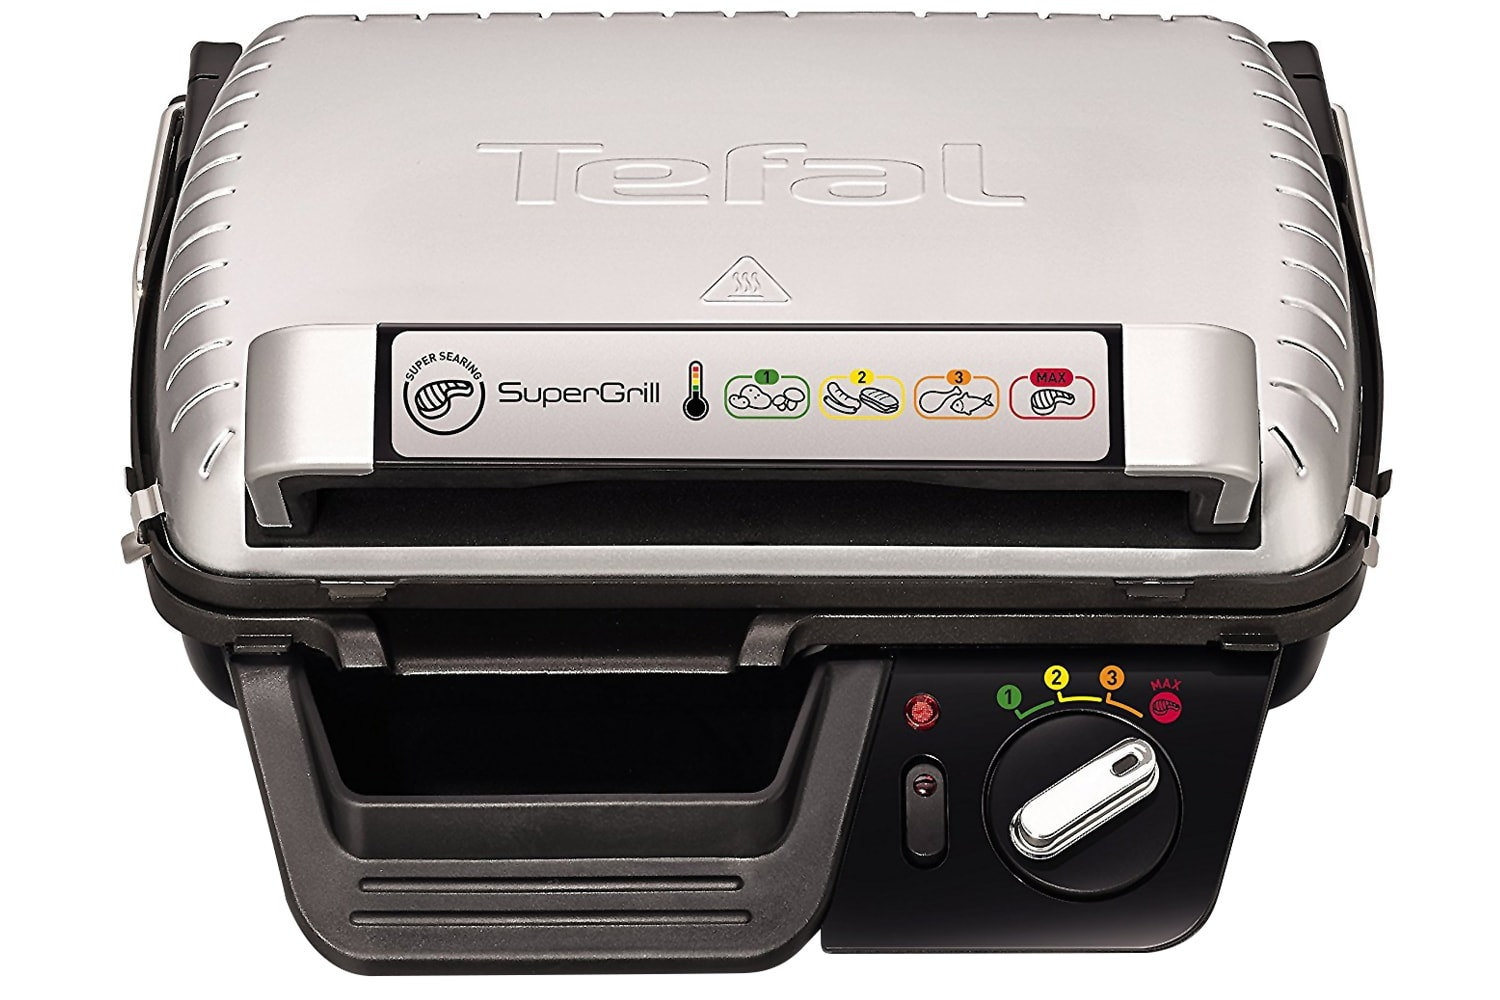 Tefal Supergrill 2000W | GC450B27